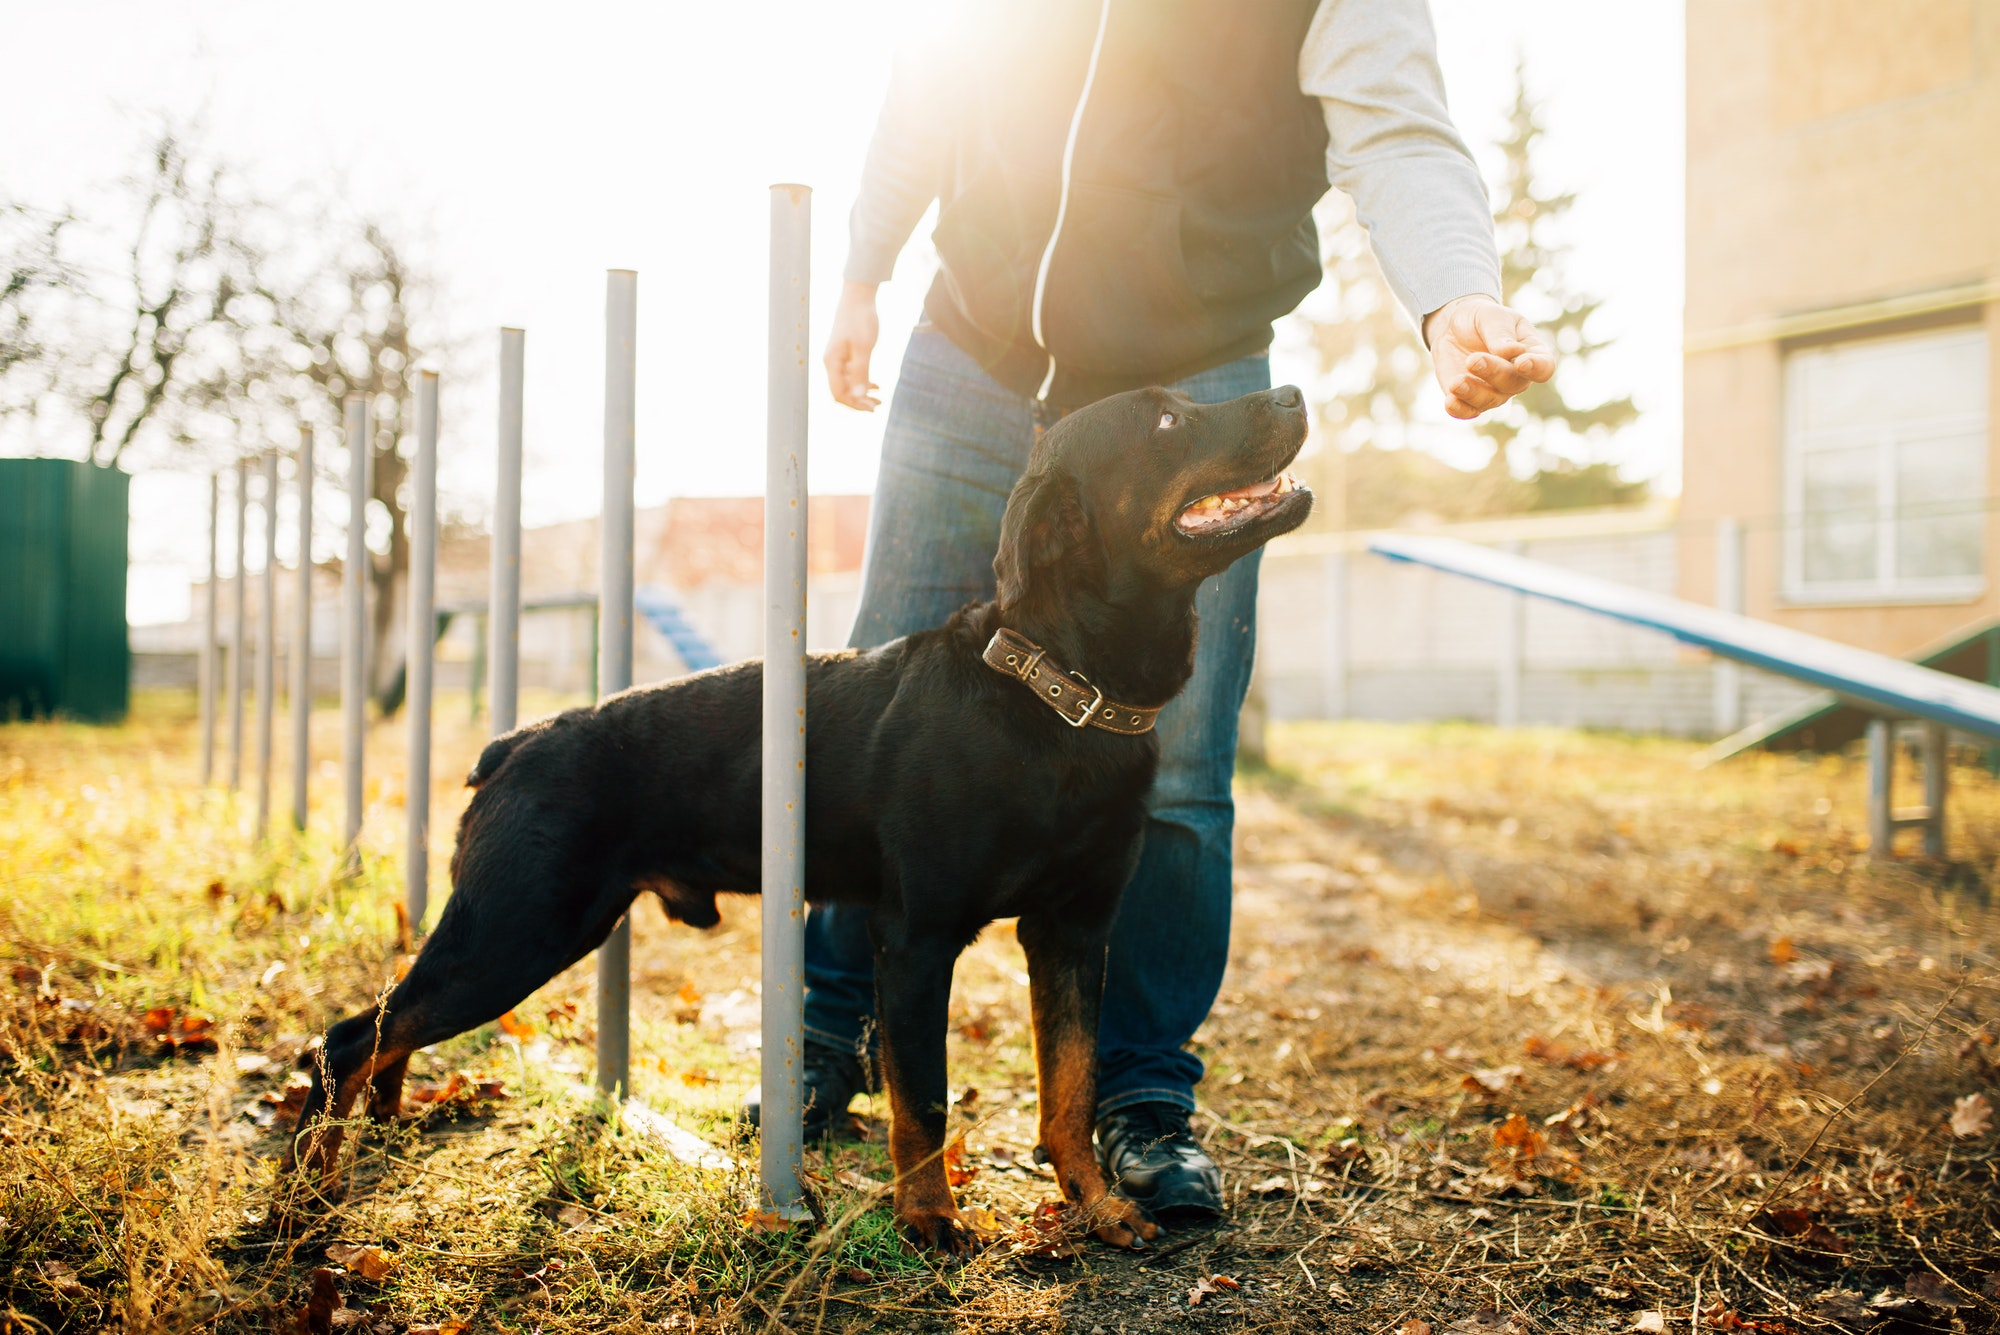 Cynologist with sniffing dog, training outside